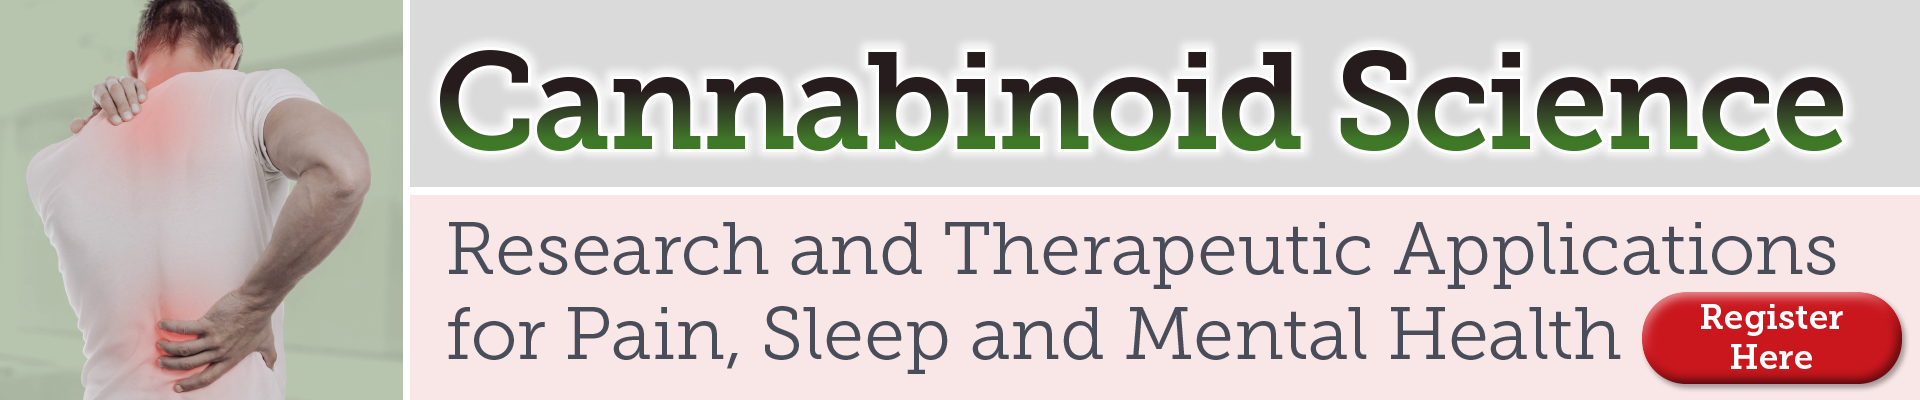 Cannabinoid Science: Research and Therapeutic Applications for Pain, Sleep and Mental Health